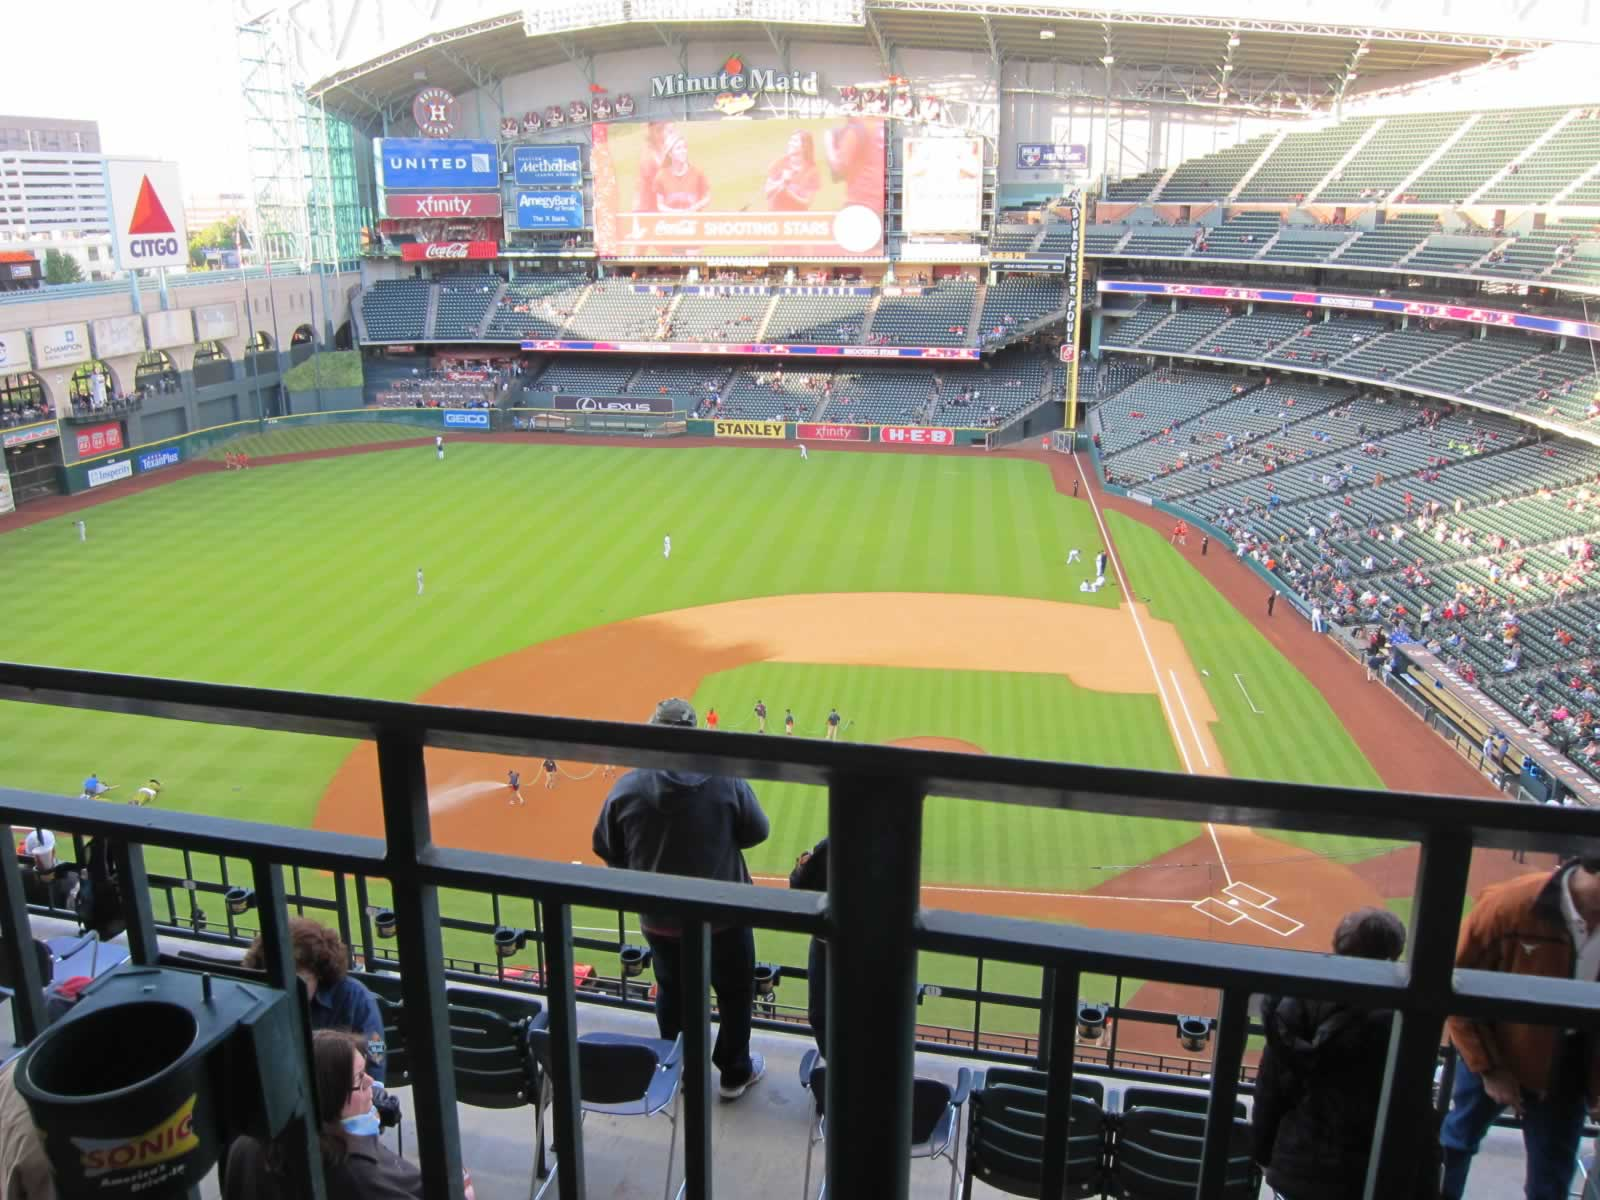 Seat View for Minute Maid Park Section 414, Row 1, Seat 17